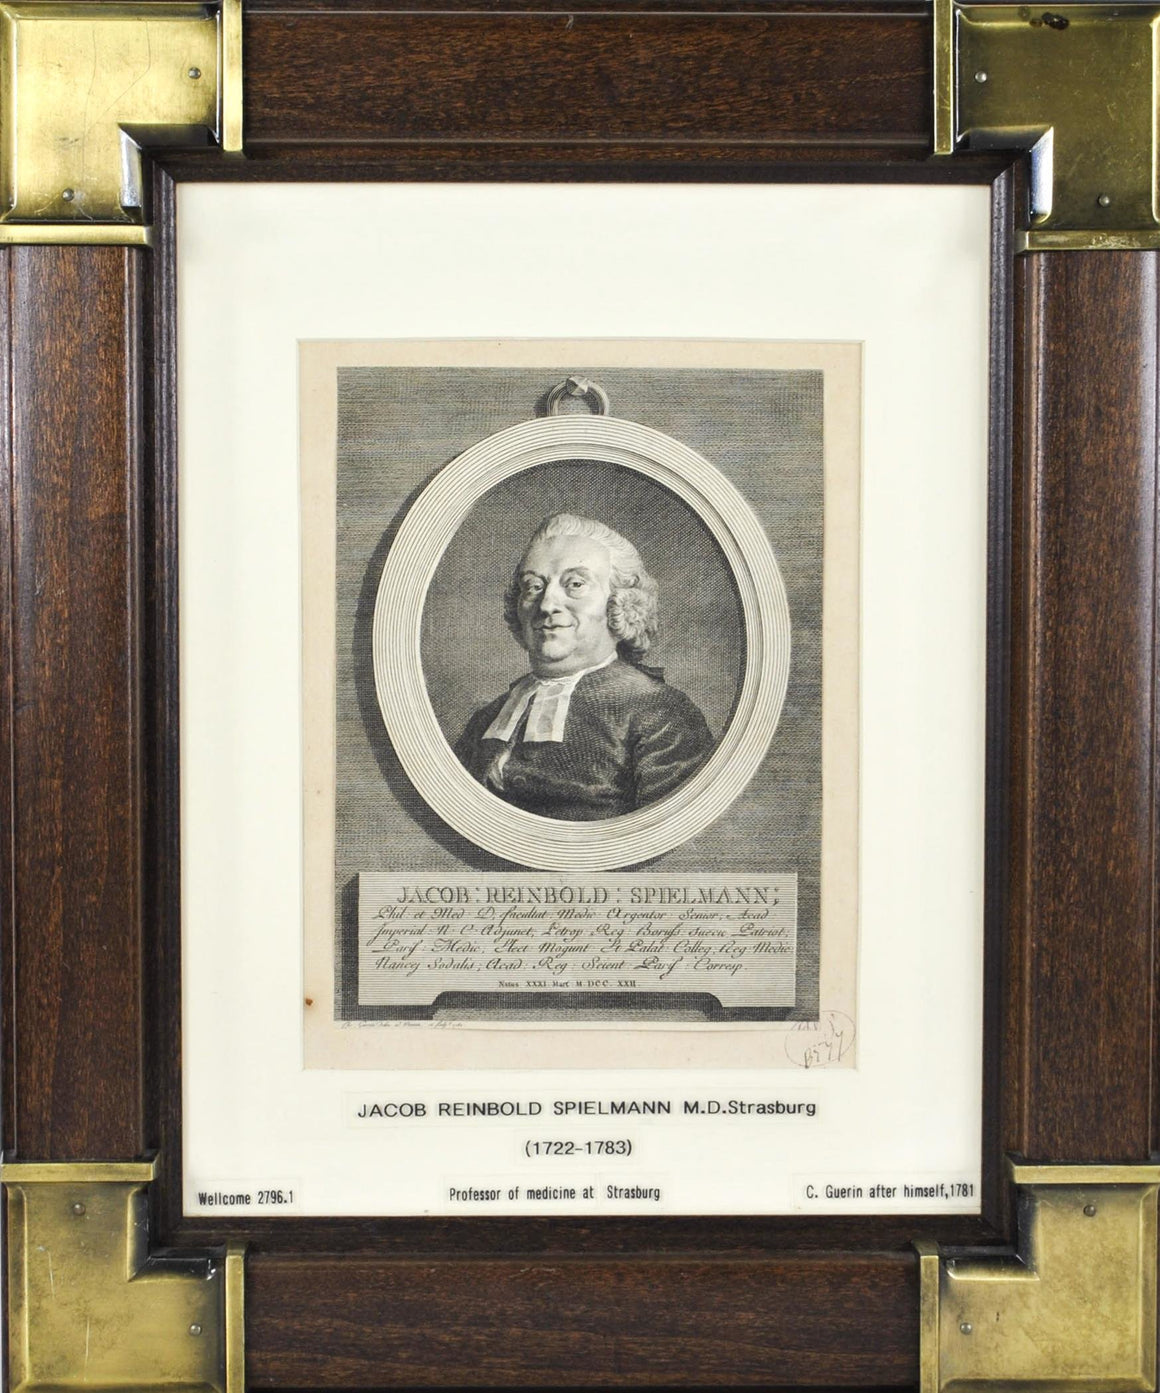 Jacob Reinbold Spielmann (1722-1783) Antique Medical Doctor Print 1781